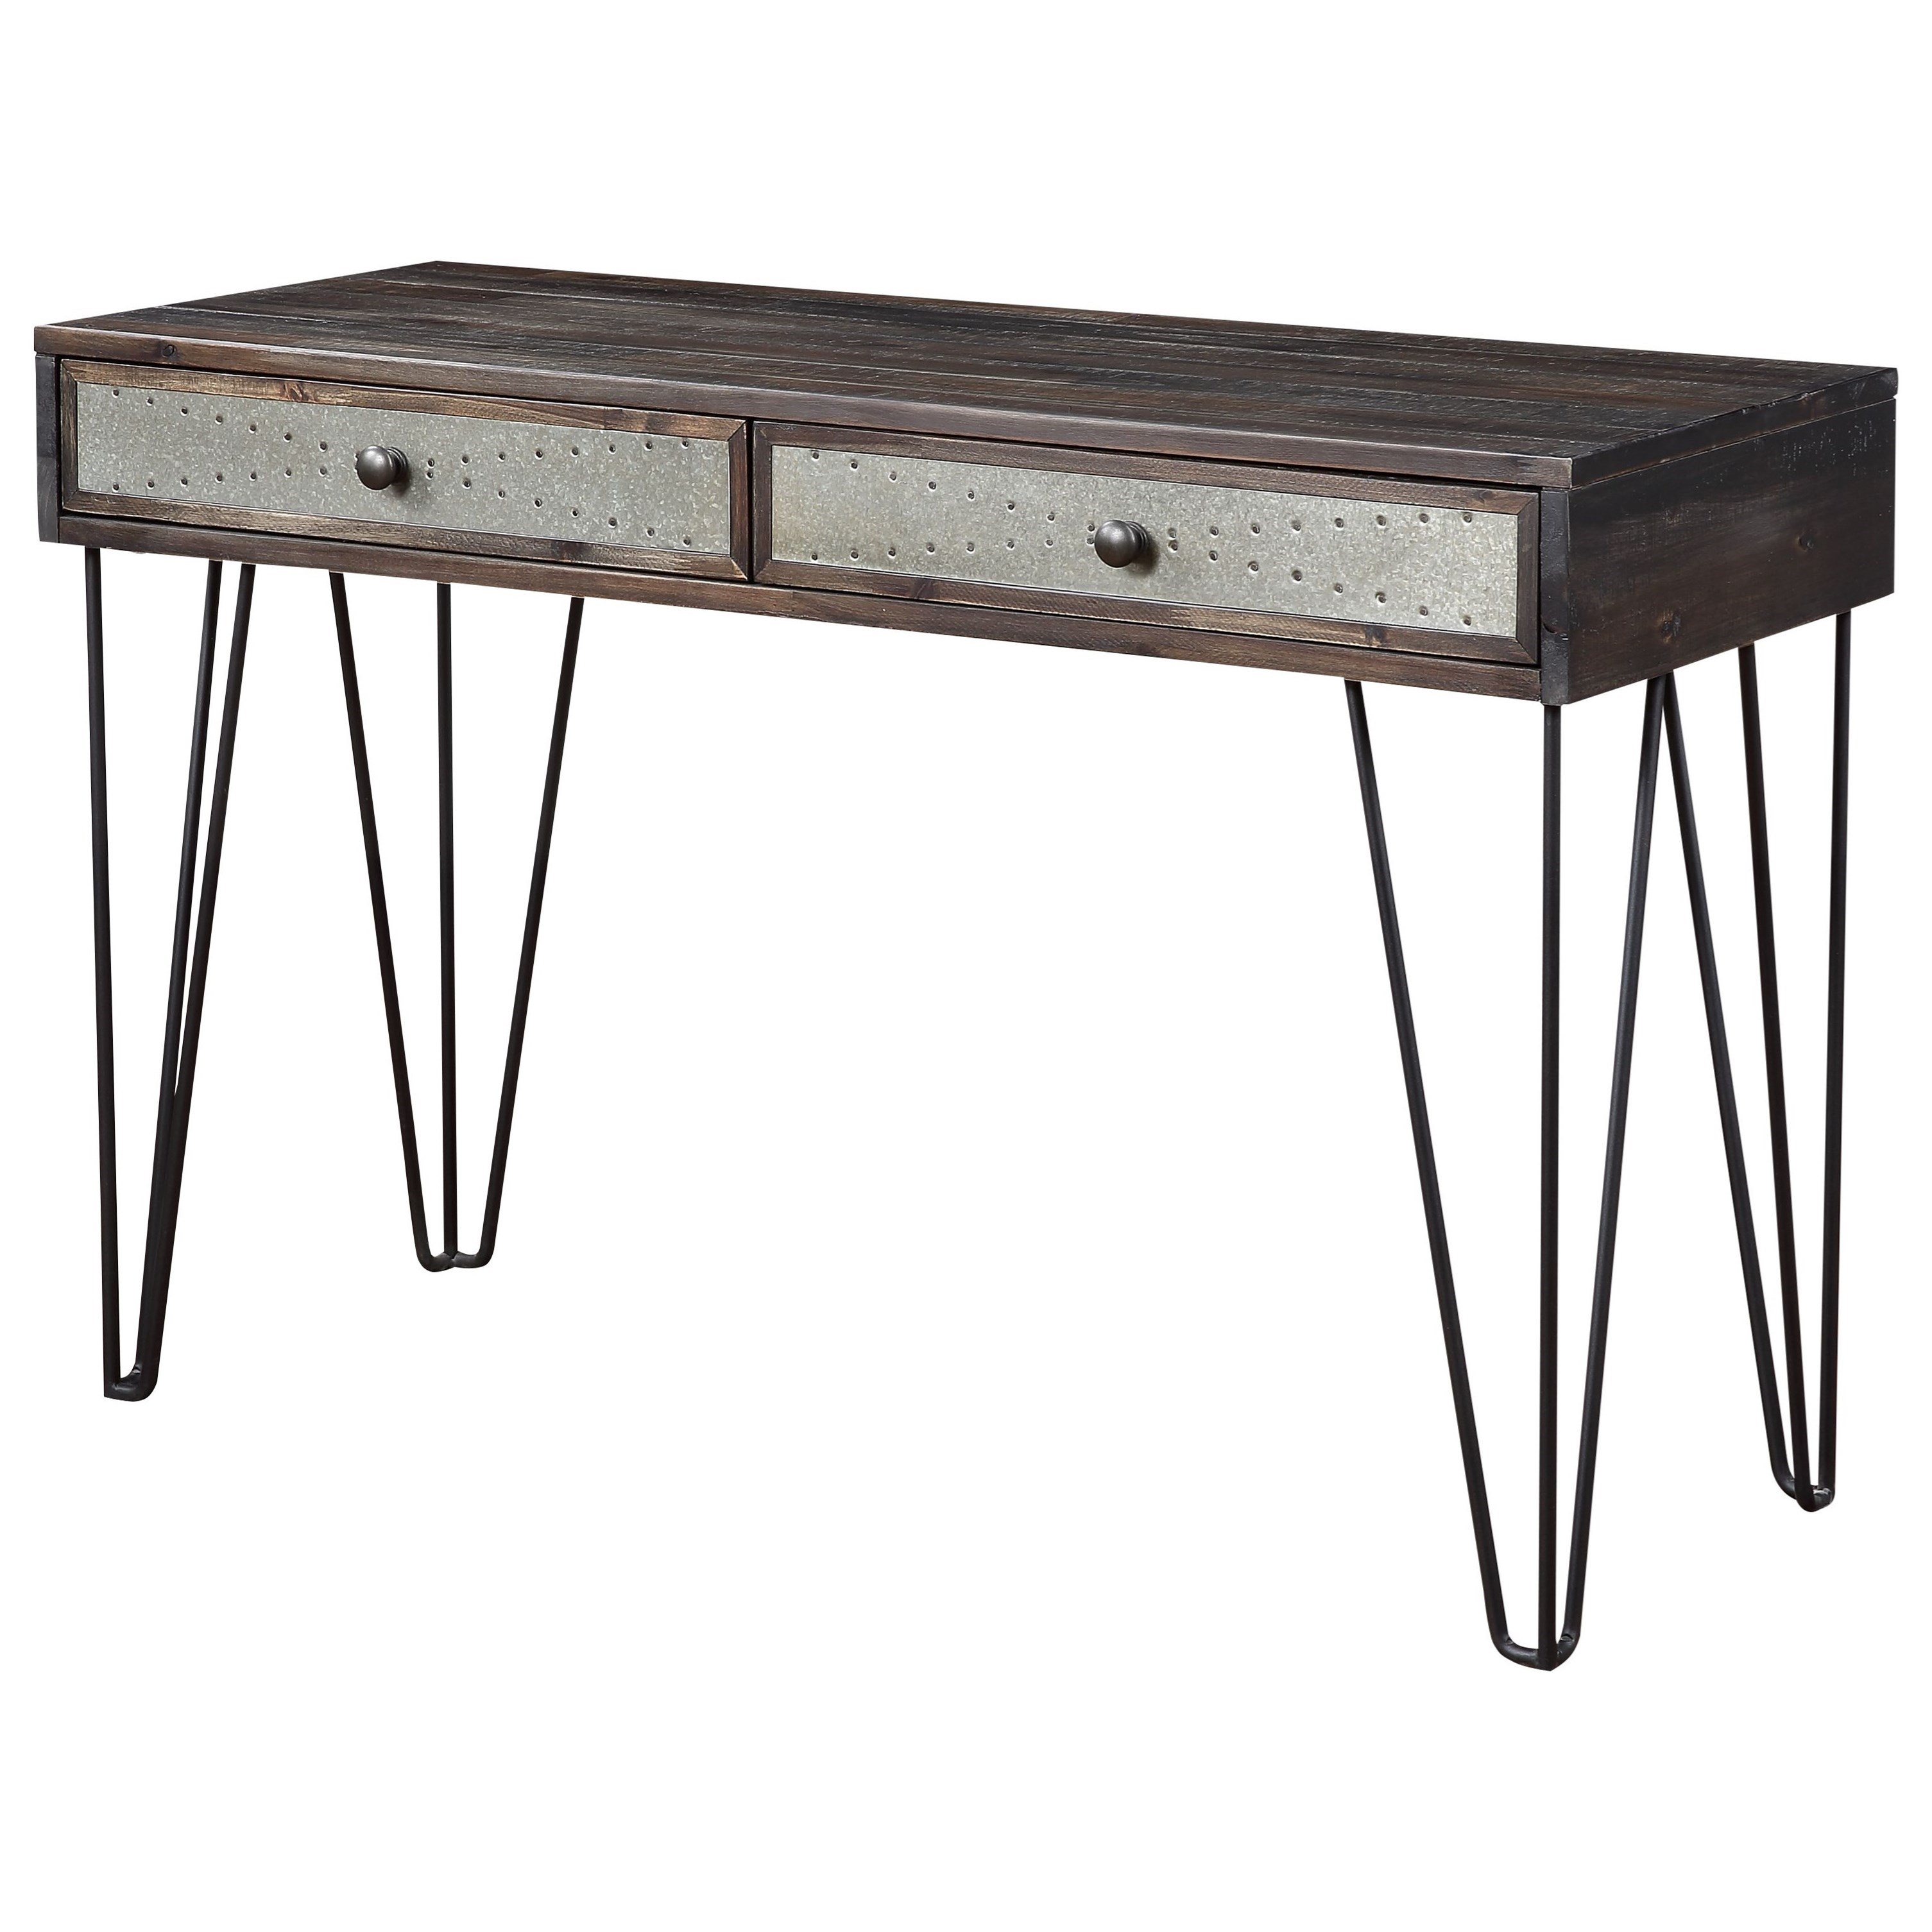 Aspen Court Vintage 2-Drawer Console by Coast to Coast Imports at Baer's Furniture